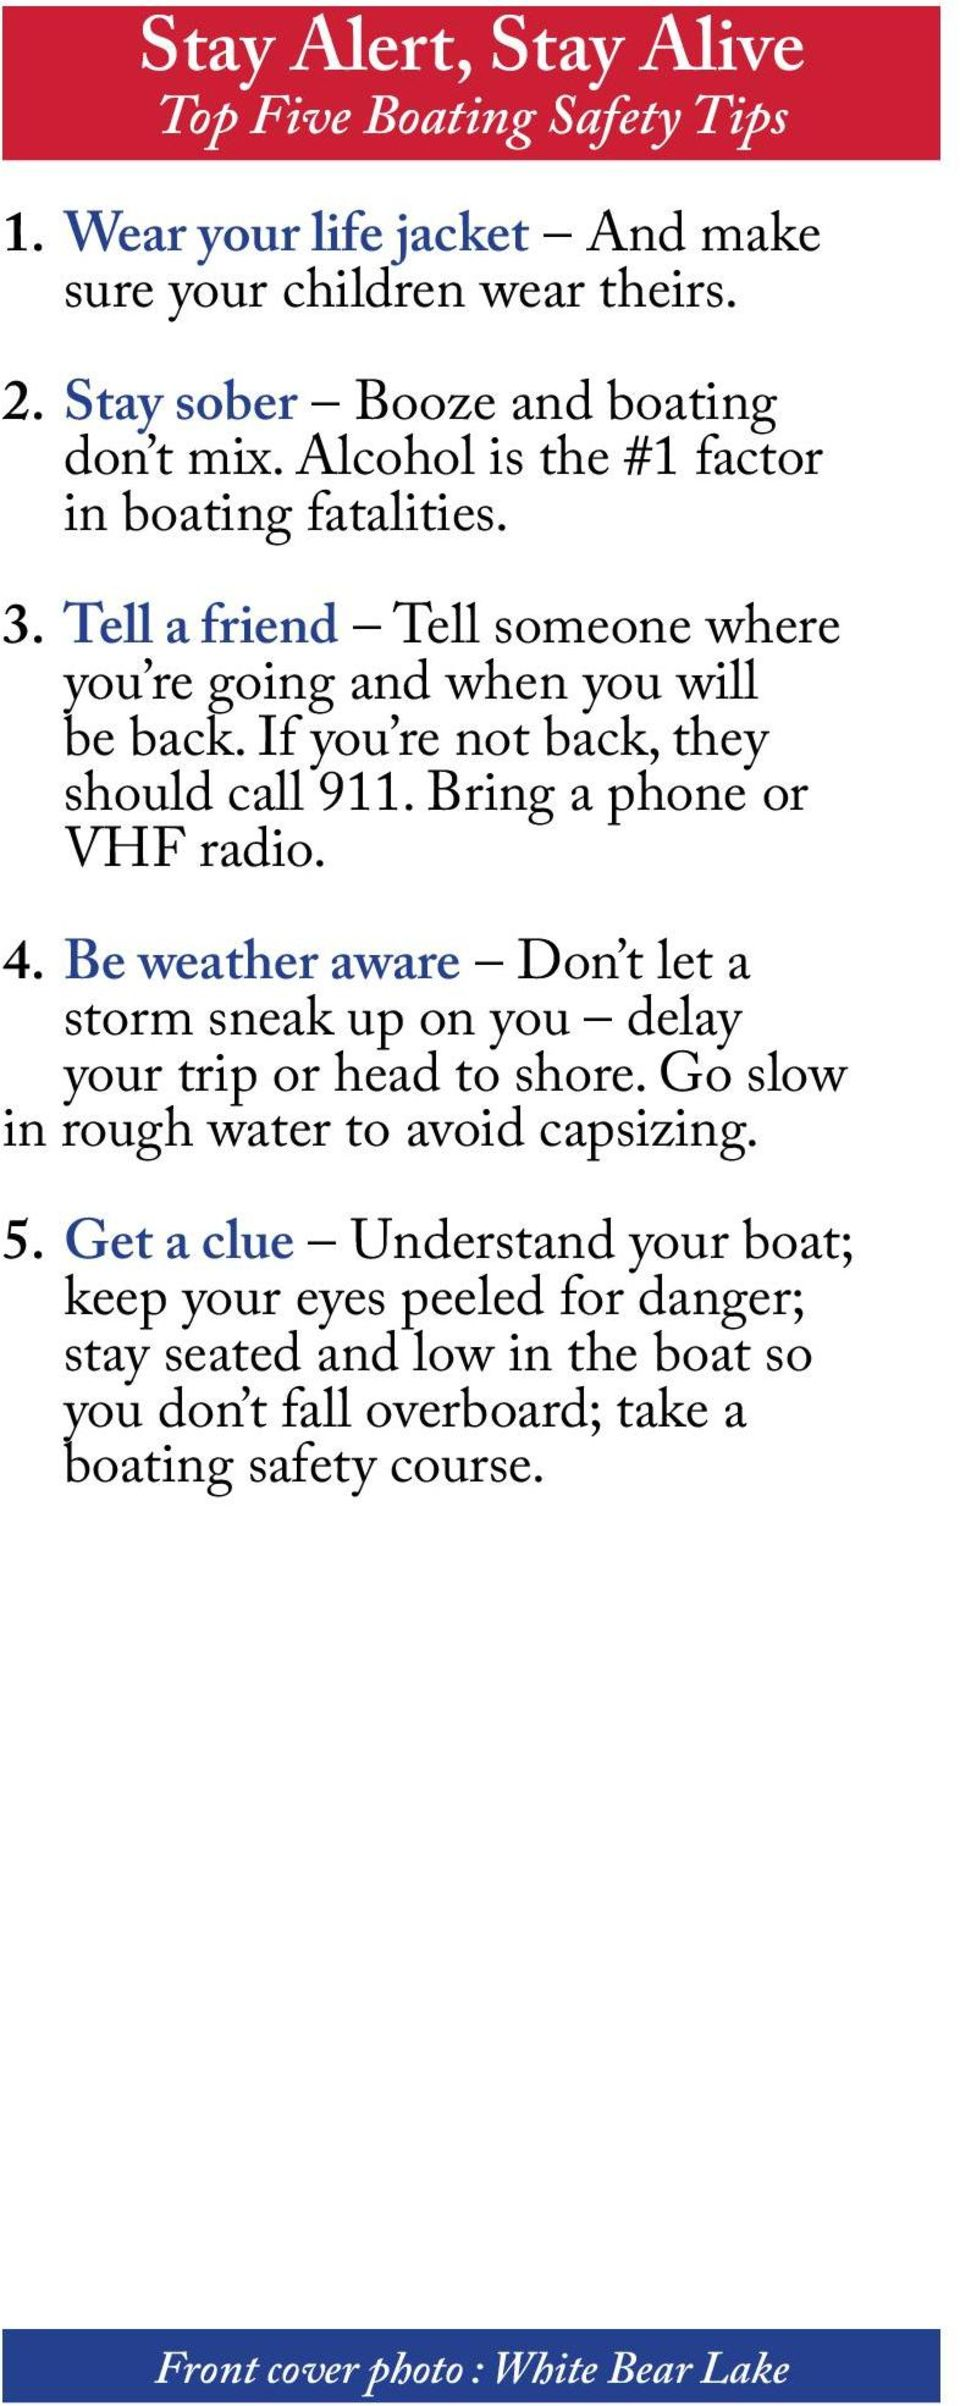 Bring a phone or VHF radio. 4. Be weather aware Don t let a storm sneak up on you delay your trip or head to shore. Go slow in rough water to avoid capsizing. 5.